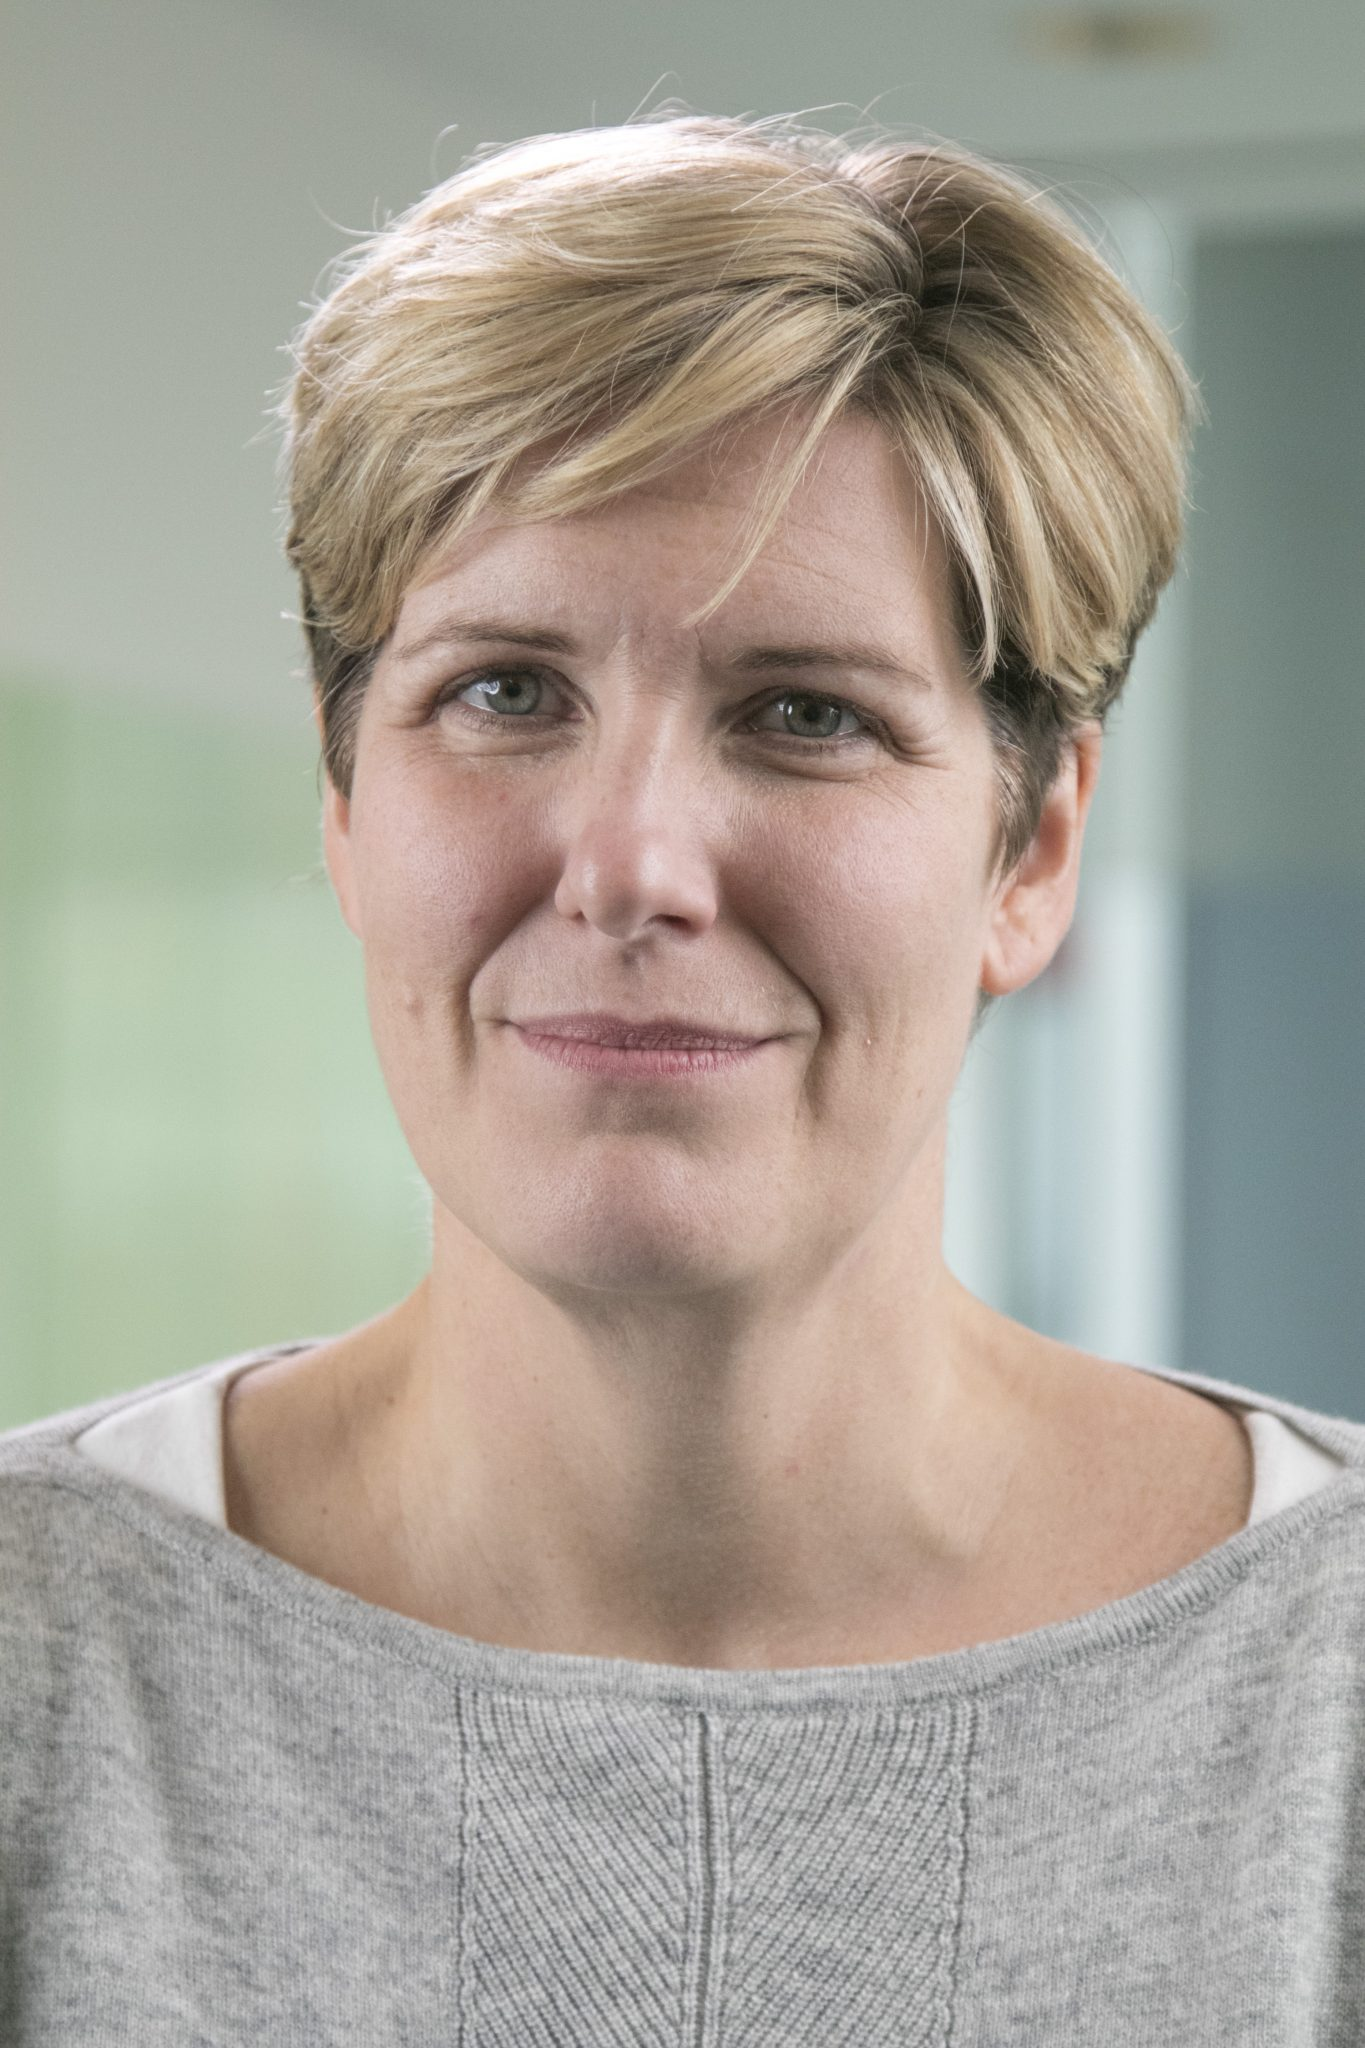 Becky Moffat, head of personal banking and advice at HSBC